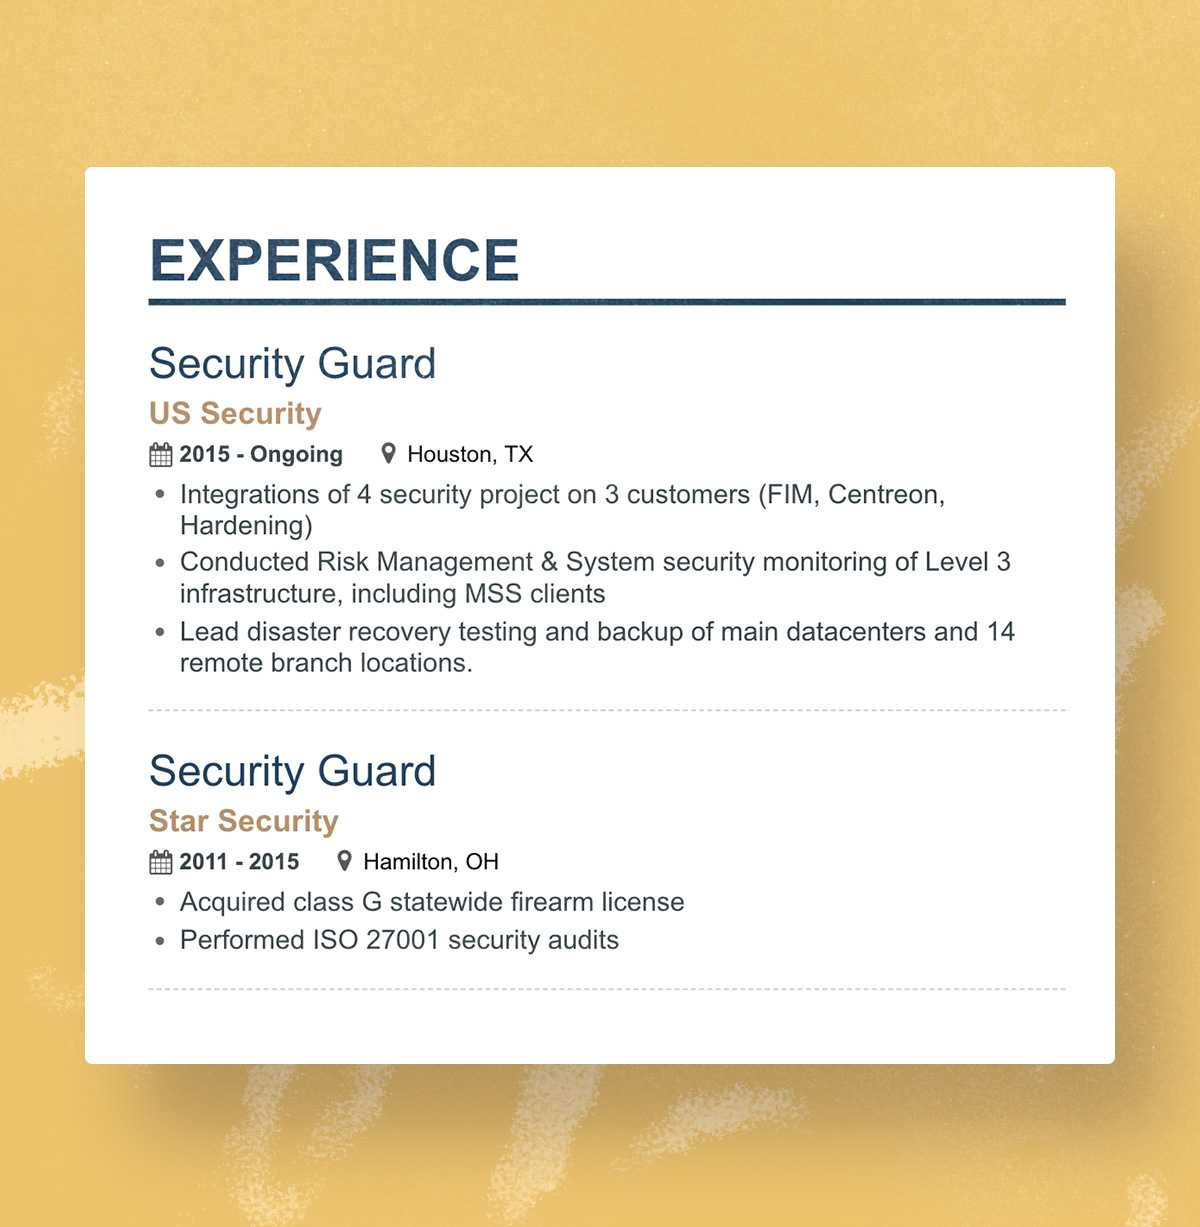 Security Guard Resume Experience